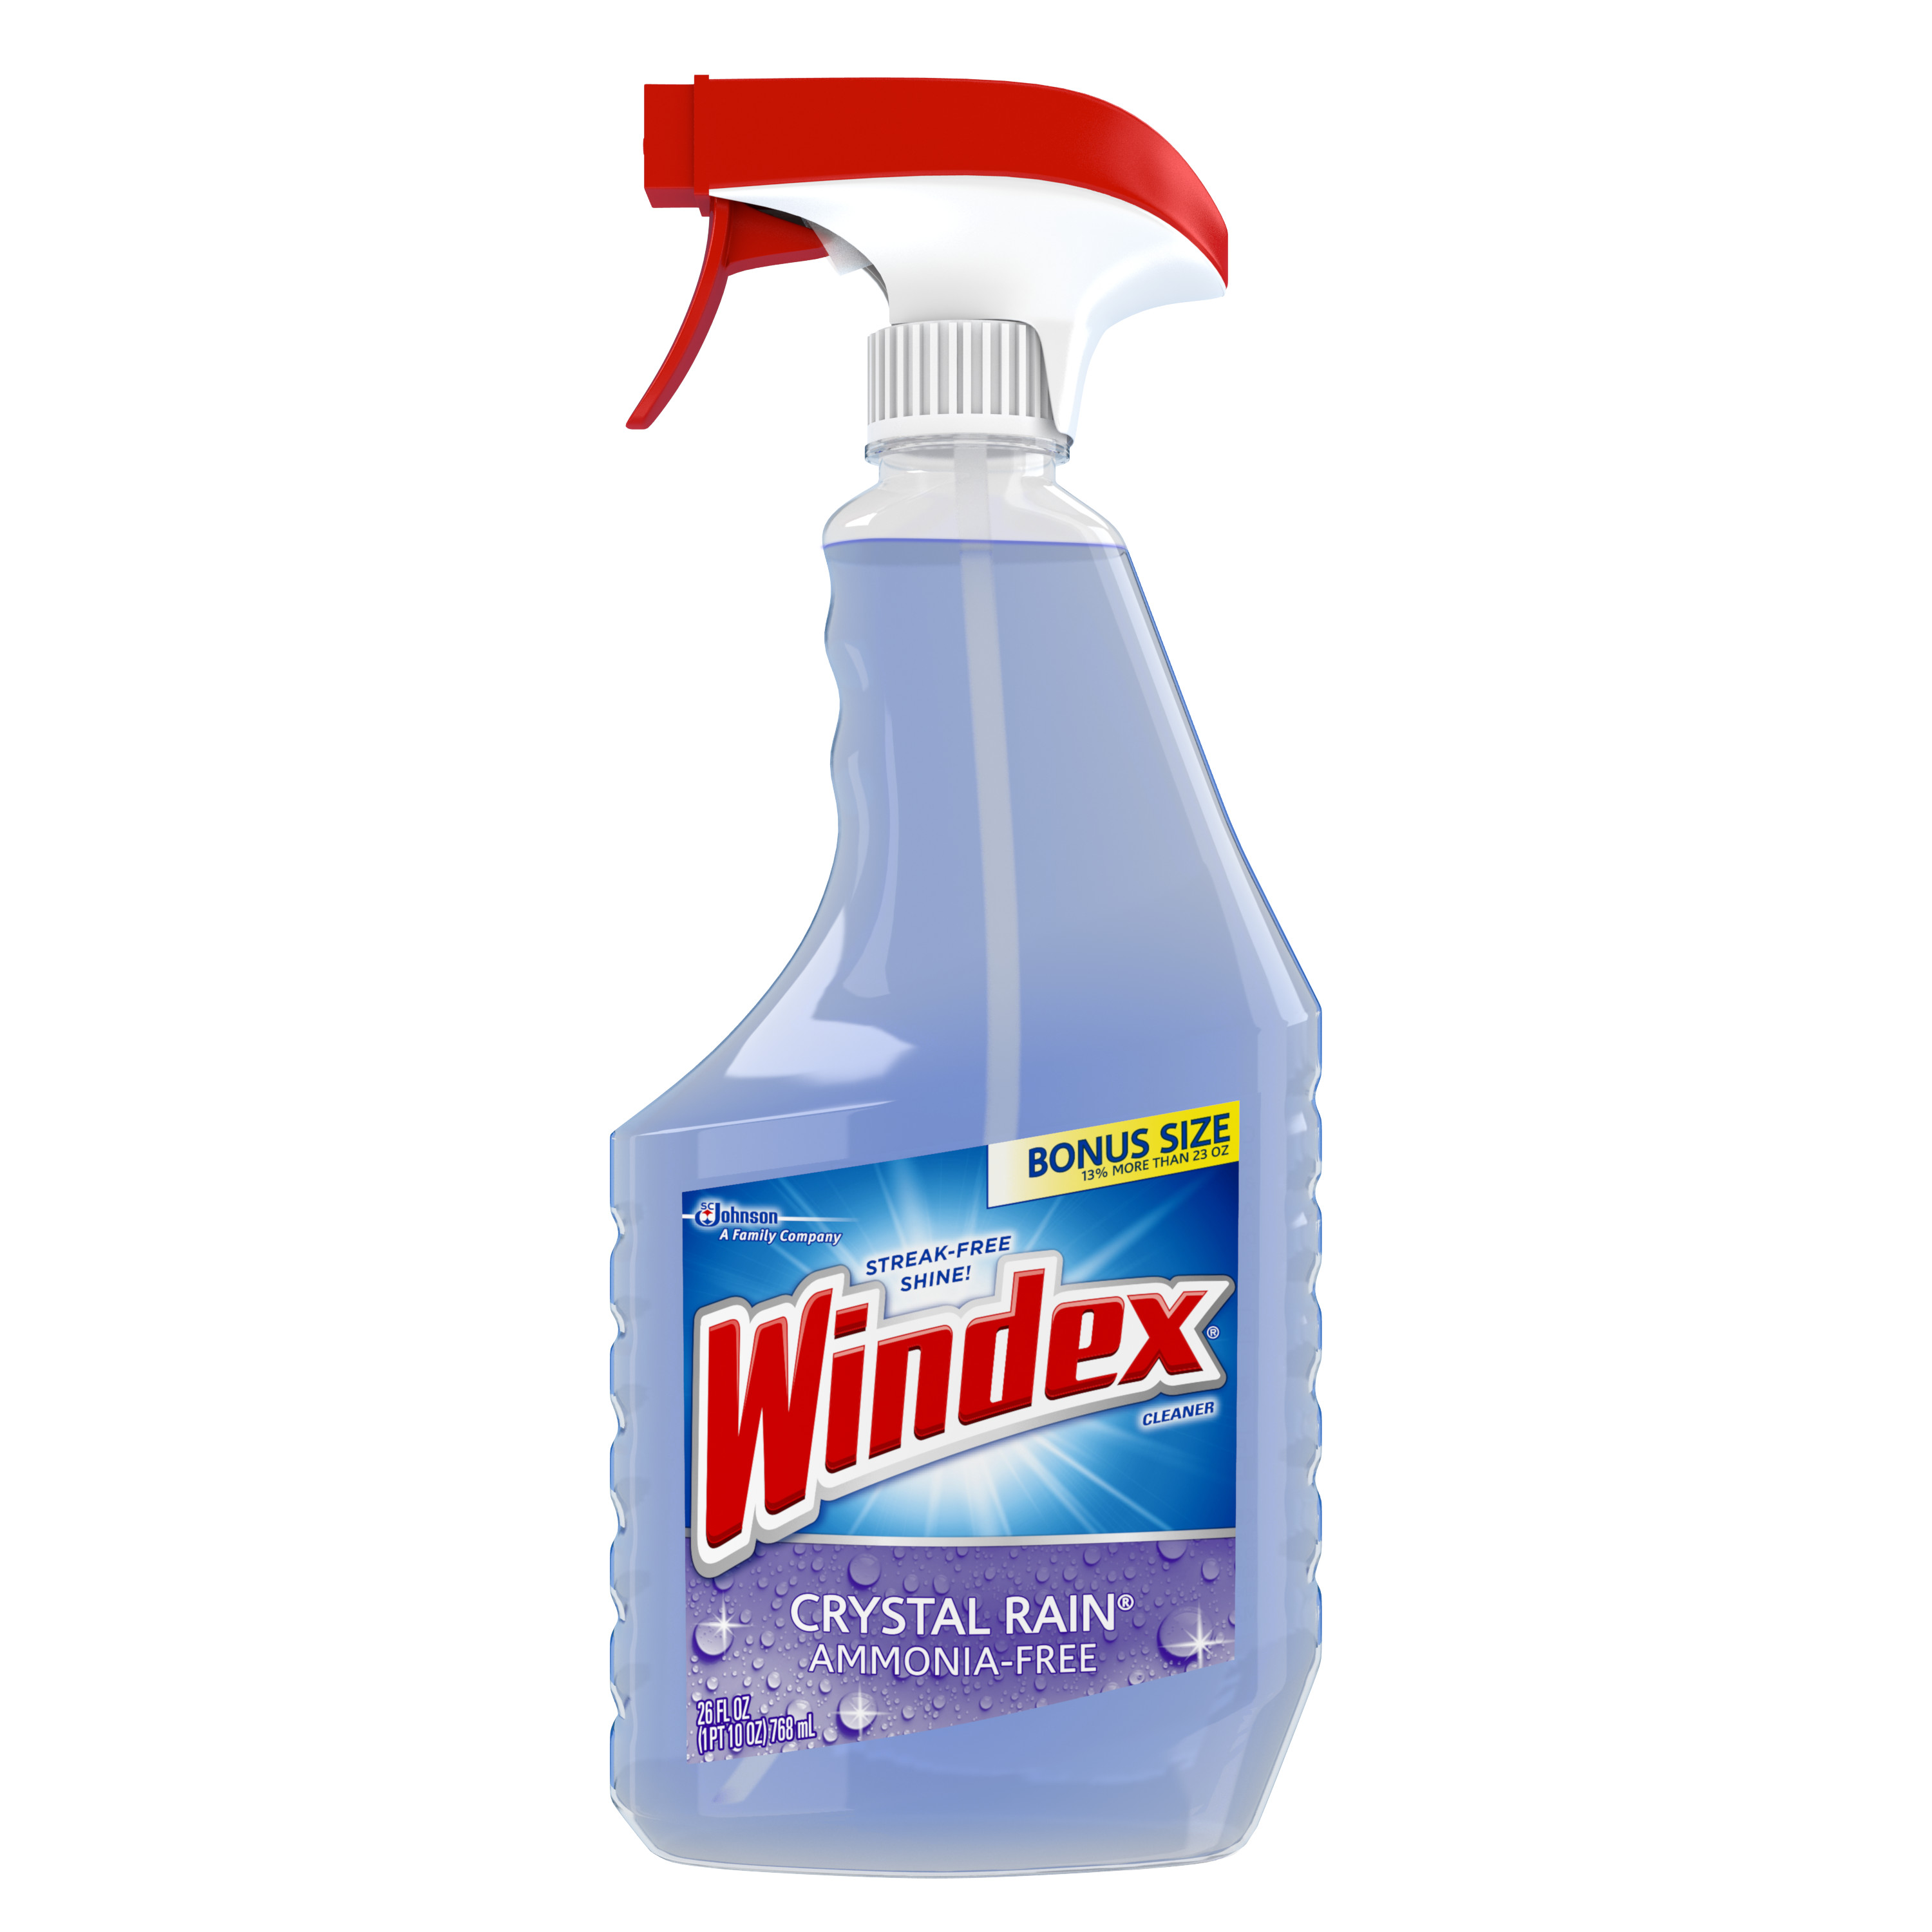 Windex Crystal Rain Glass Cleaner Trigger 26 Fluid Ounces